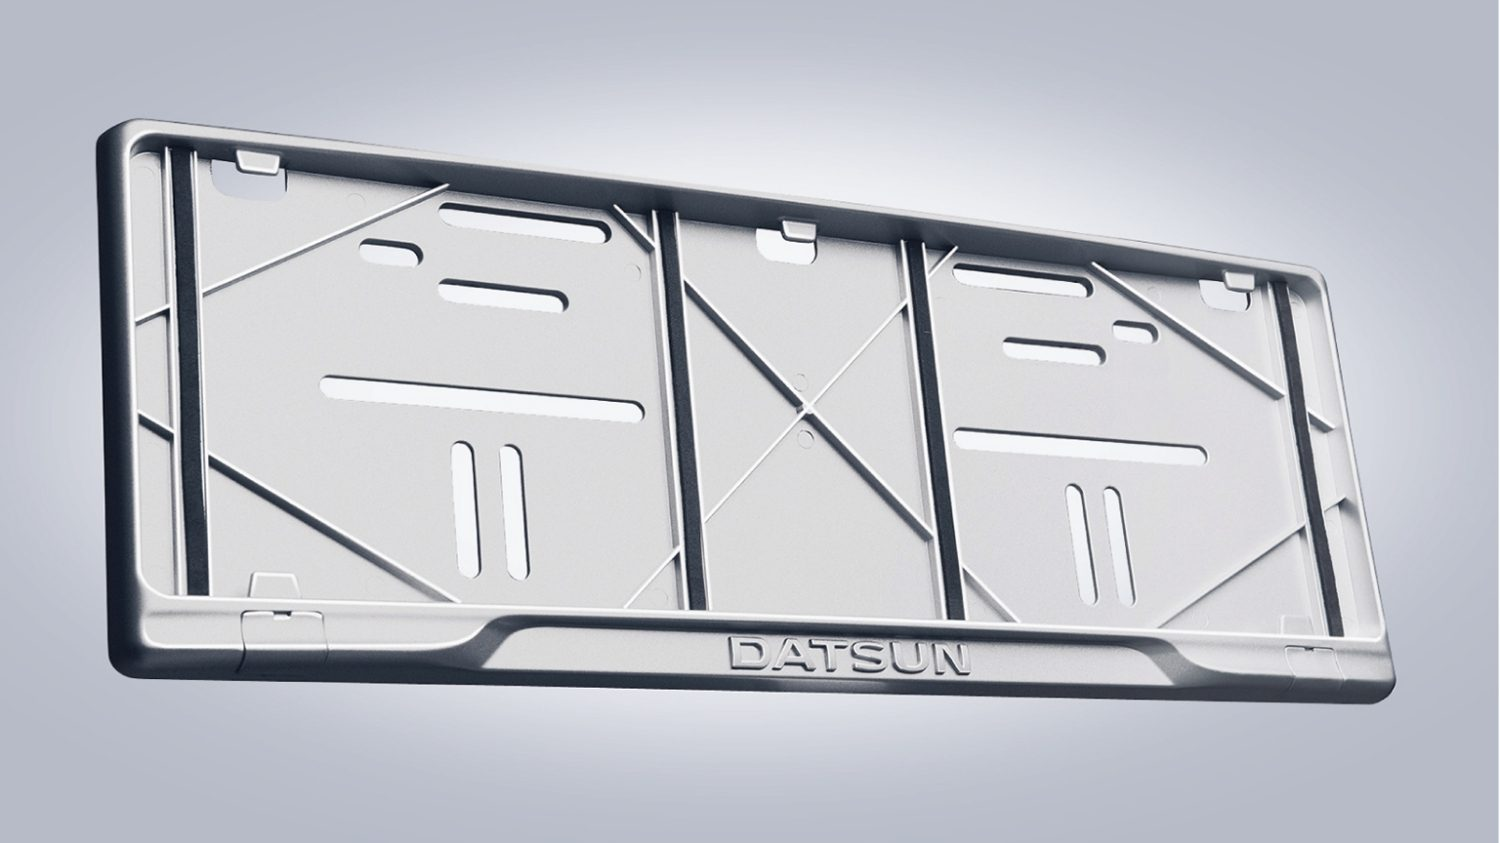 New License Plate Datsun (Silver)